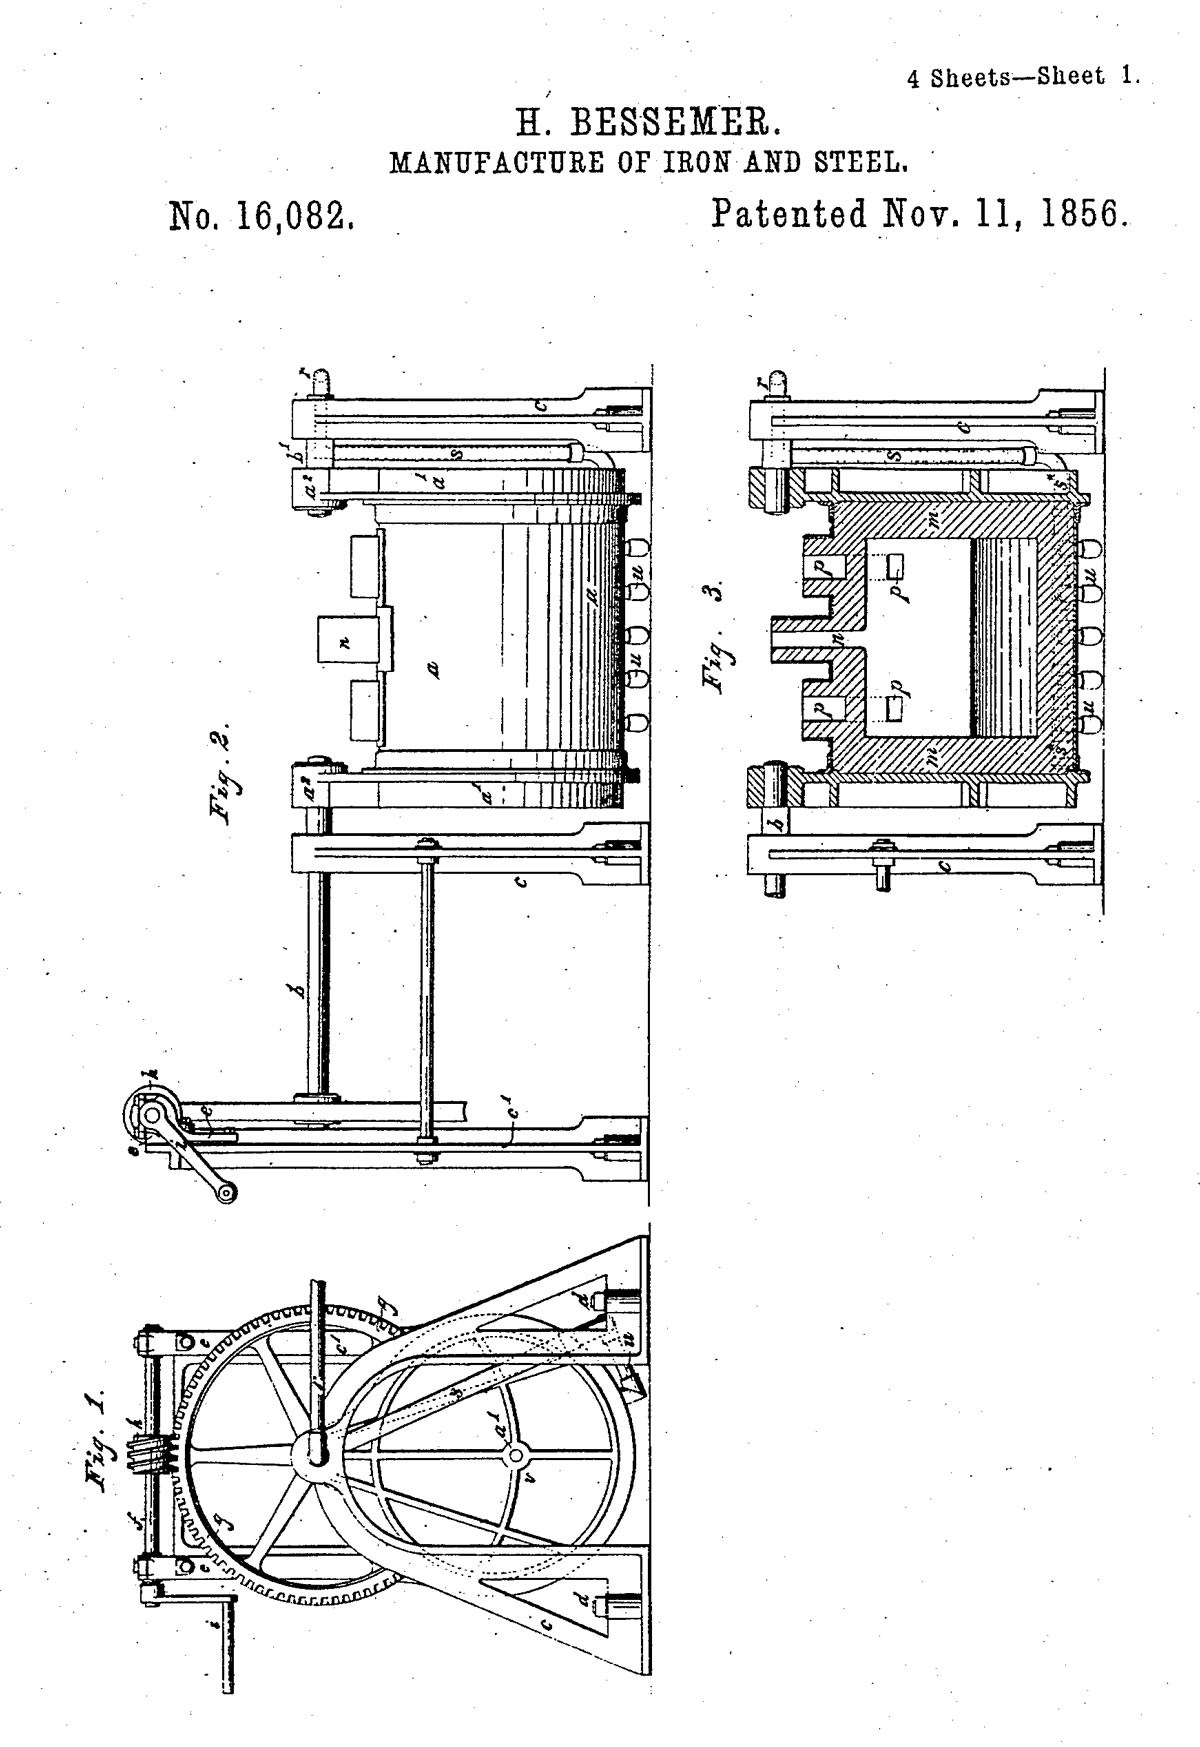 patent for steel and iron